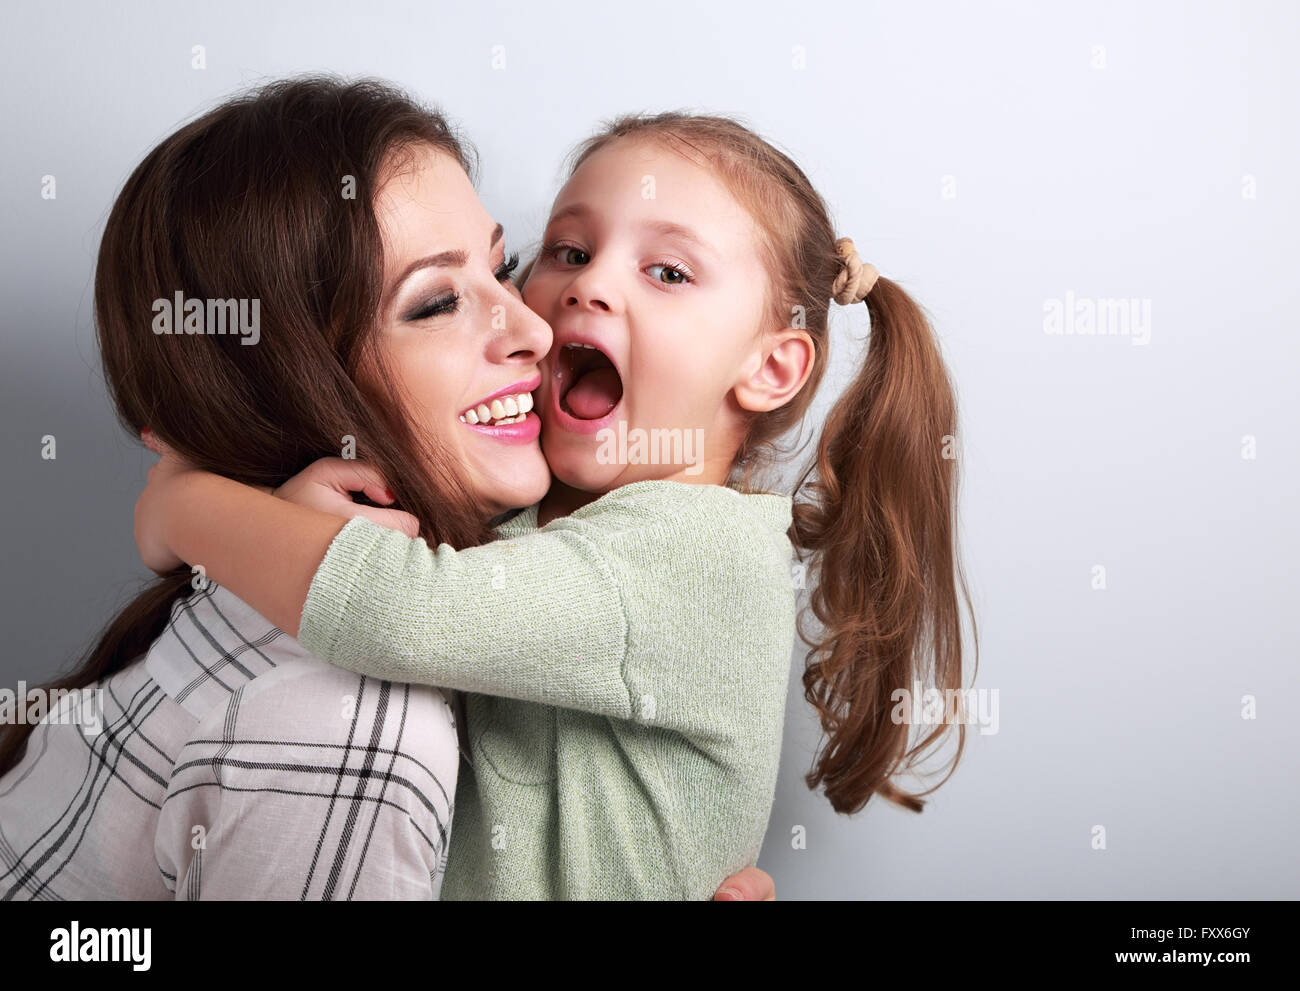 Happy grimacing kid wanting to biting her laughing mother in nose with fun face on blue background - Stock Image